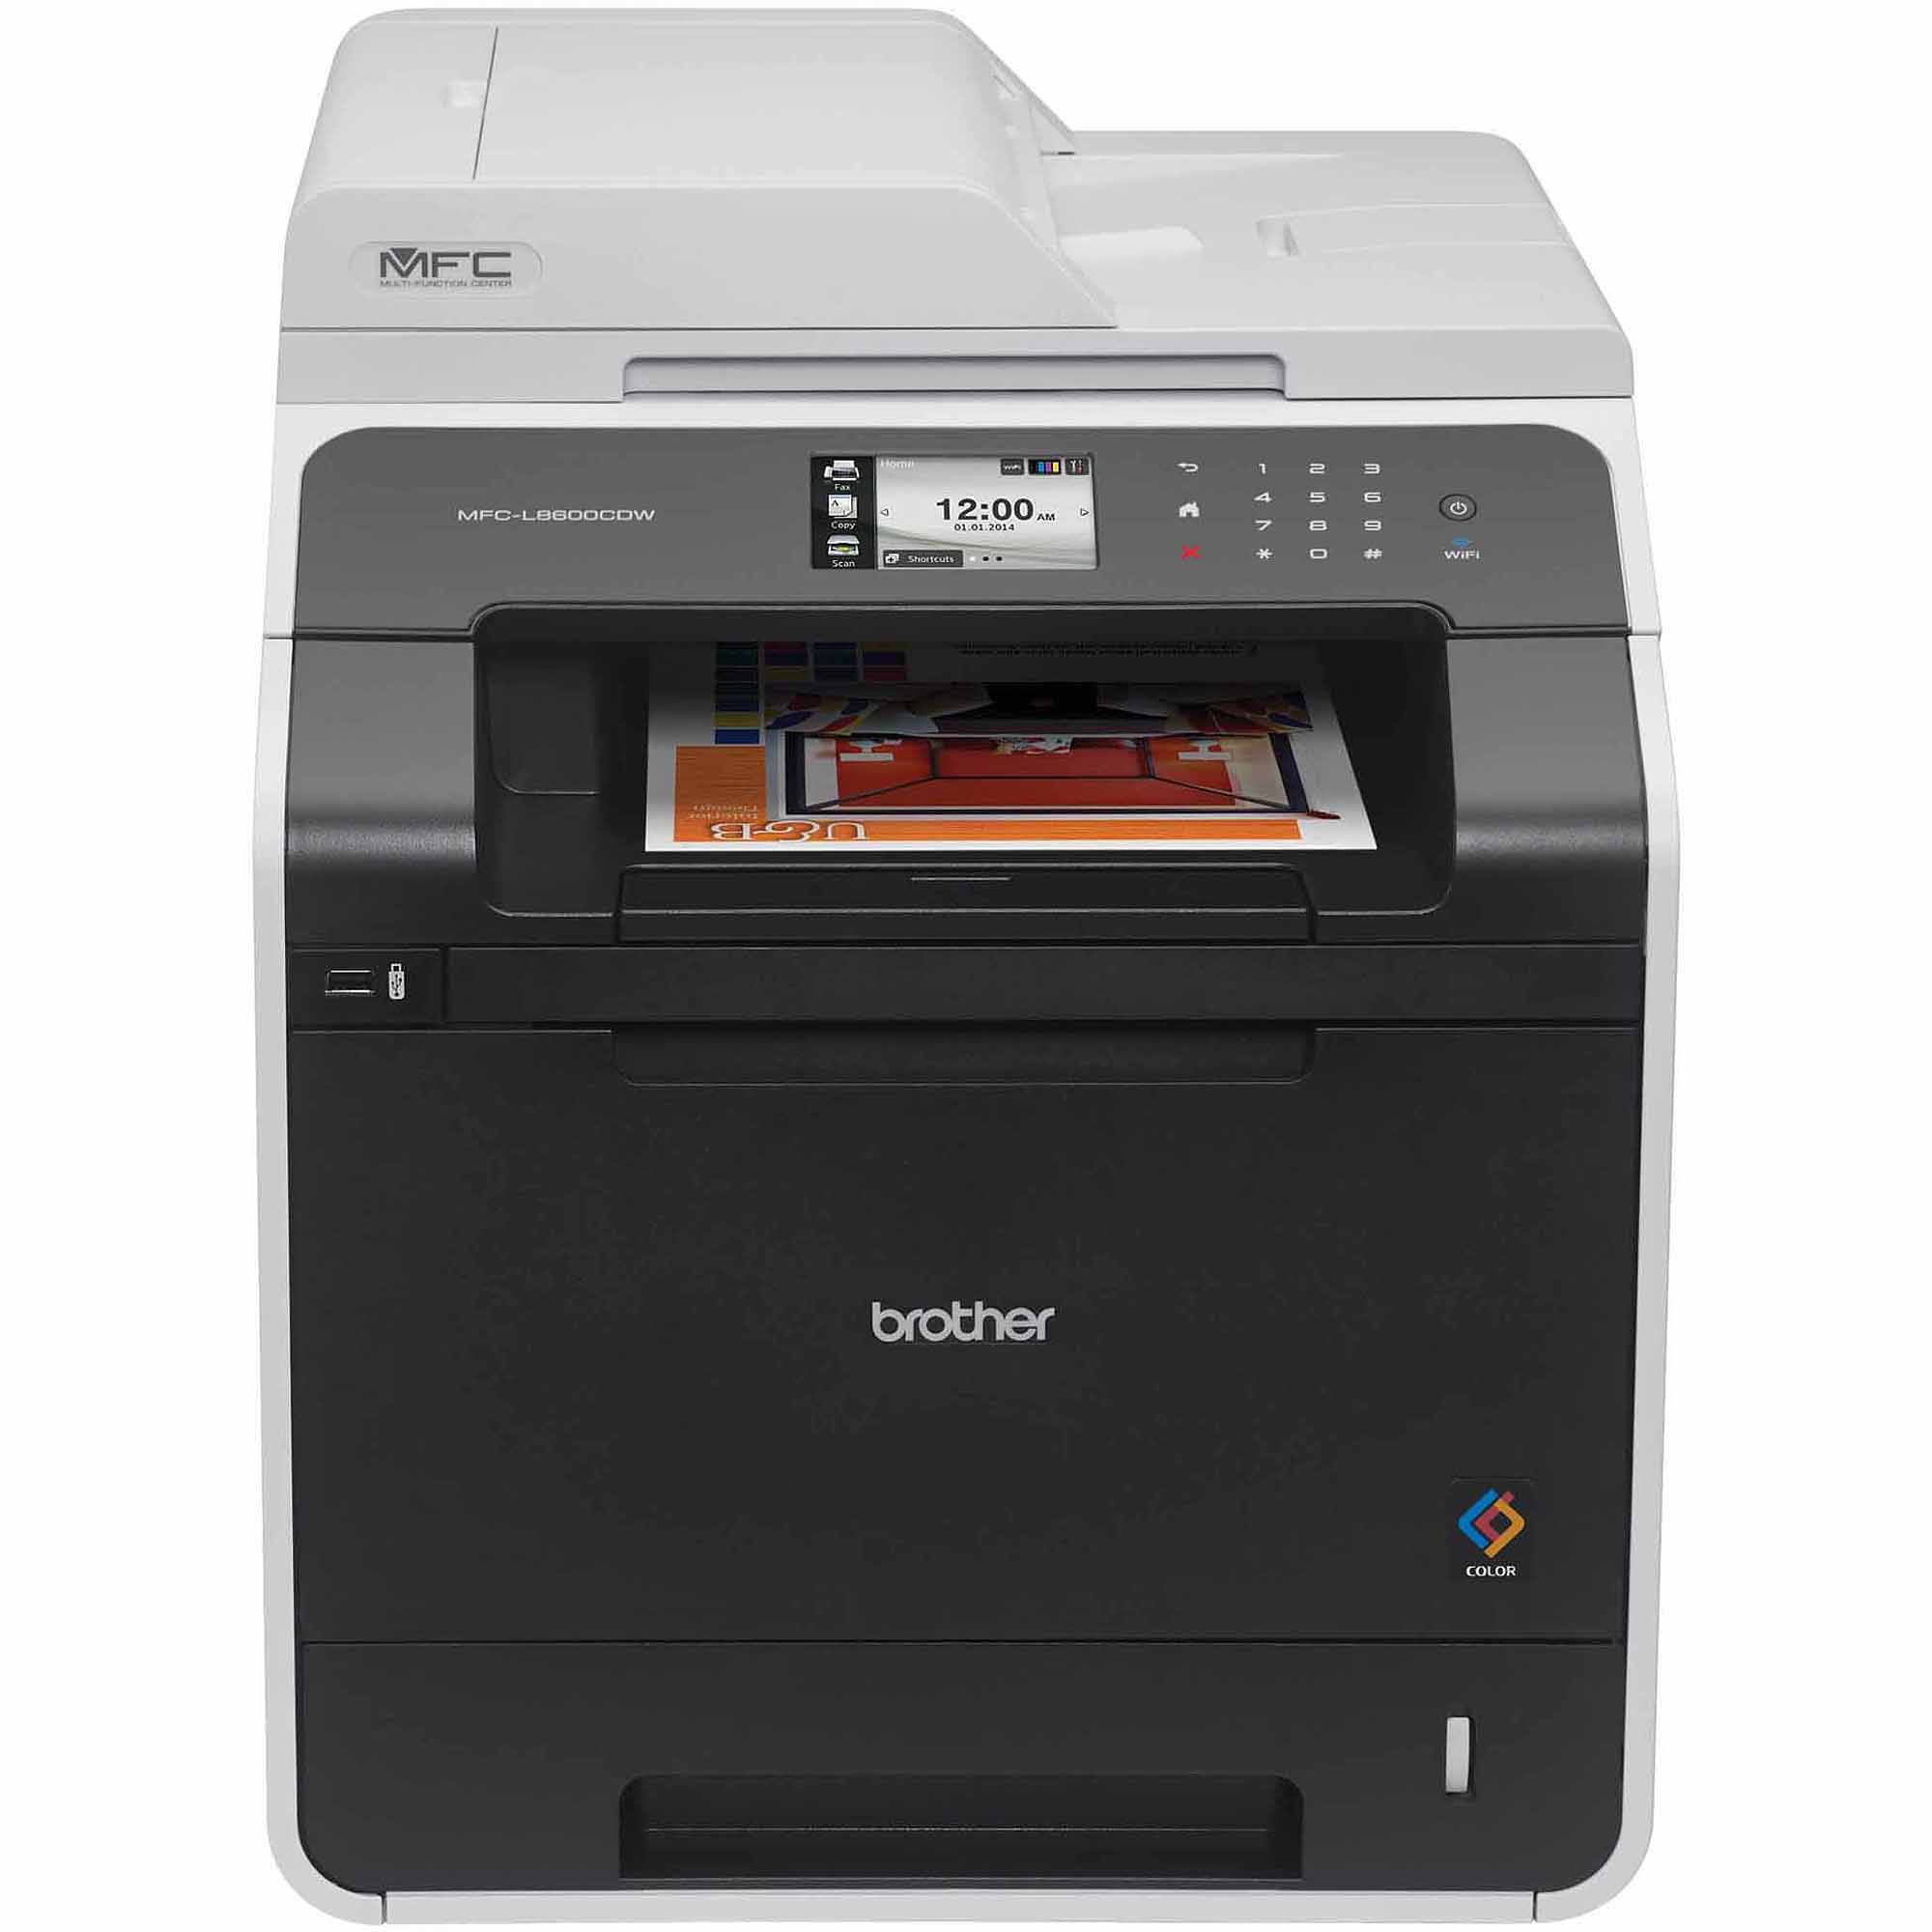 Brother MFC-L8600CDW Color Laser All-in-One Printer/Copier/Scanner/Fax Machine